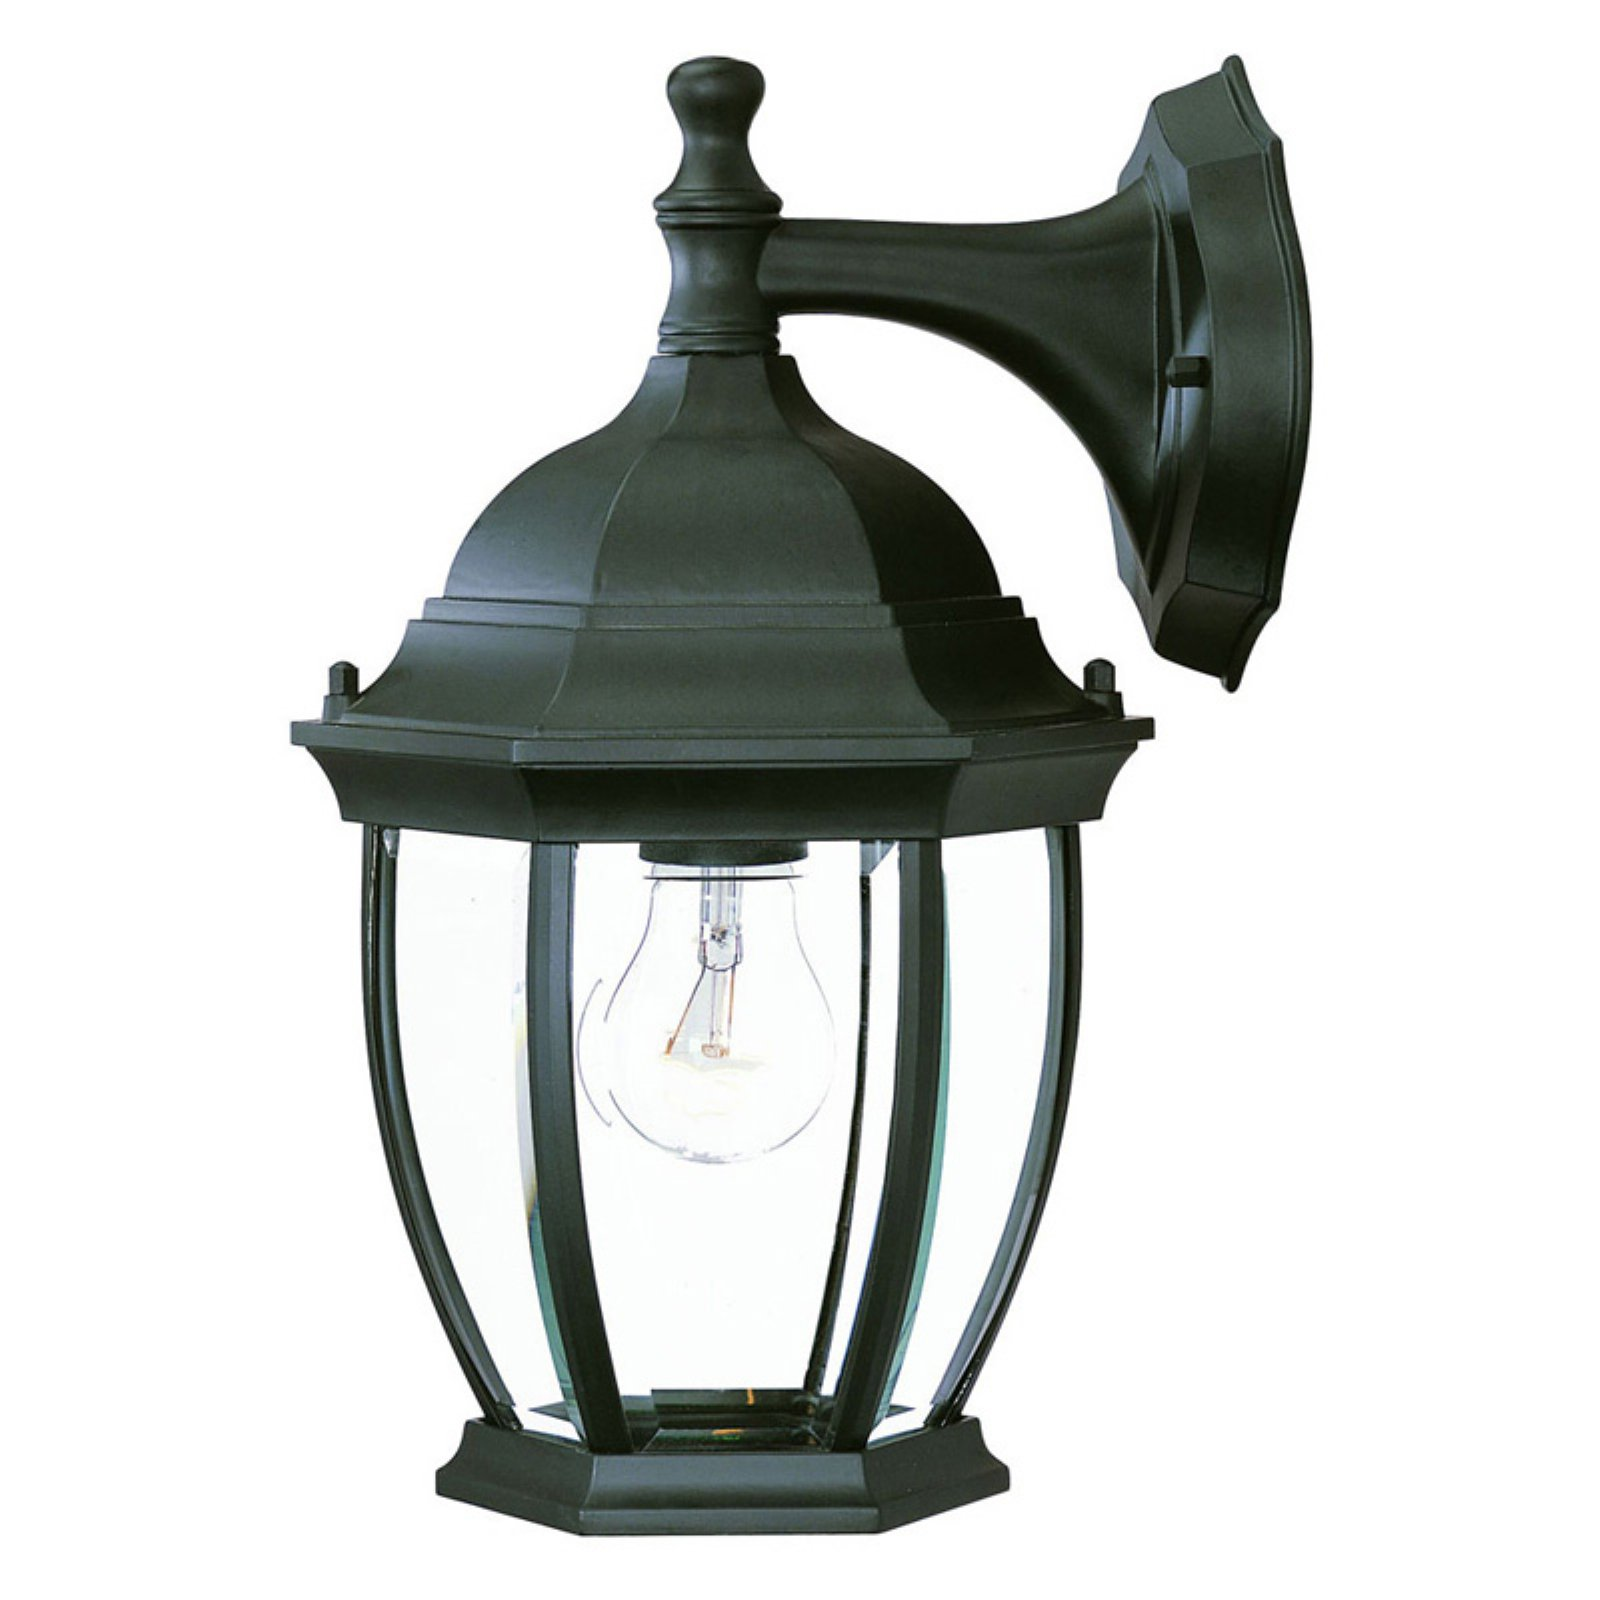 Acclaim Lighting Wexford 8 in. Outdoor Wall Mount Light Fixture